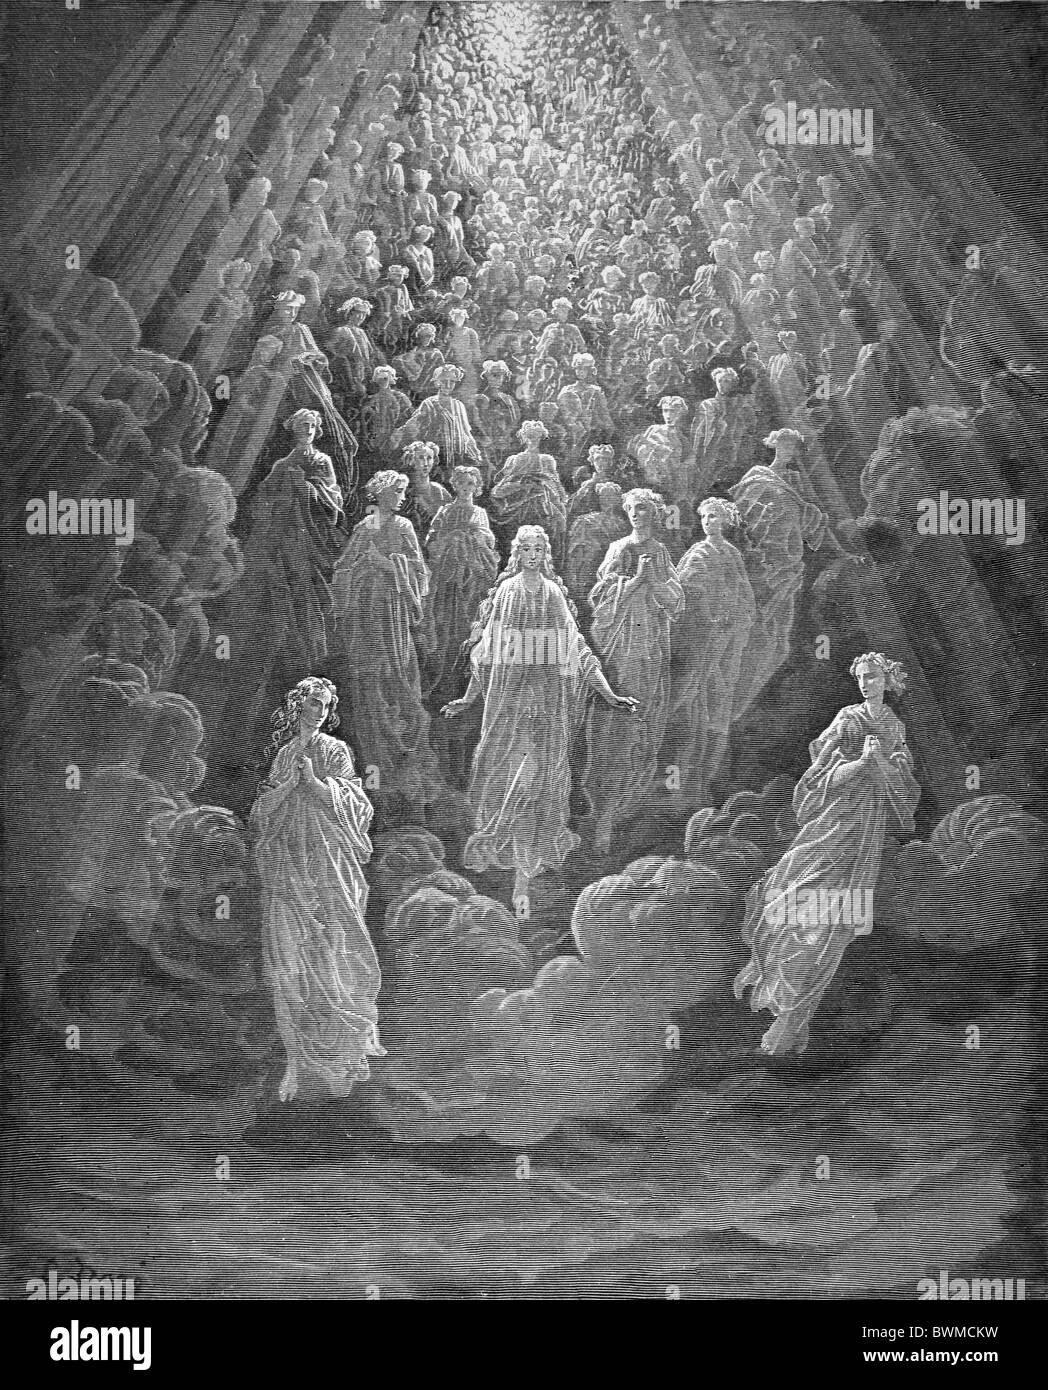 Gustave Doré; Black and White Engraving; The Angels in the Planet Mercury from Dante's Devine Comedy - Stock Image